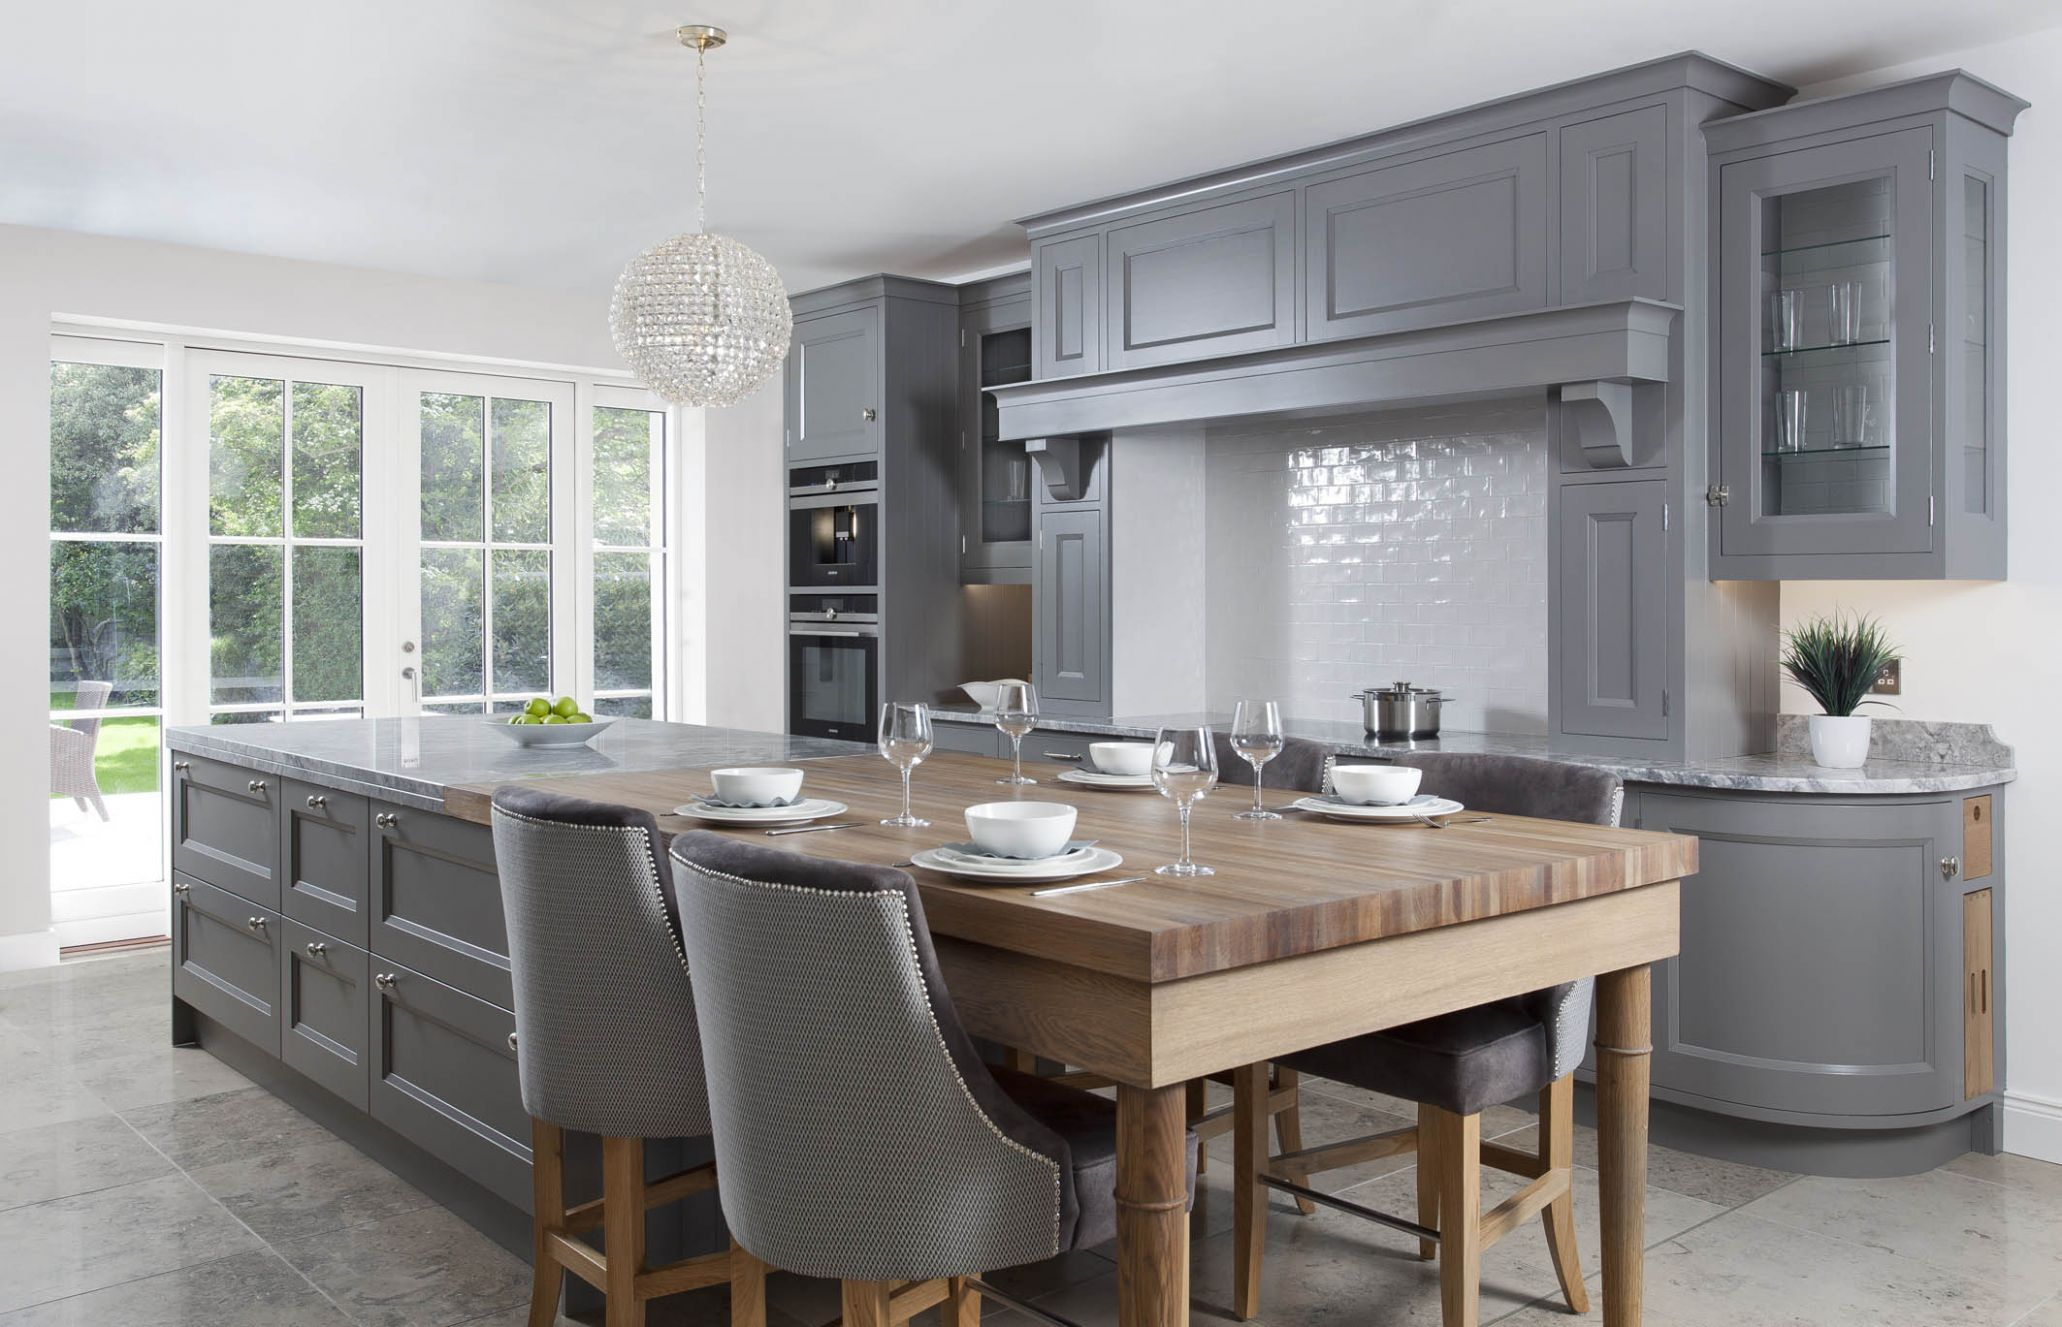 Classic inframe painted Kitchens Belfast, Northern Ireland - kitchen ideas belfast